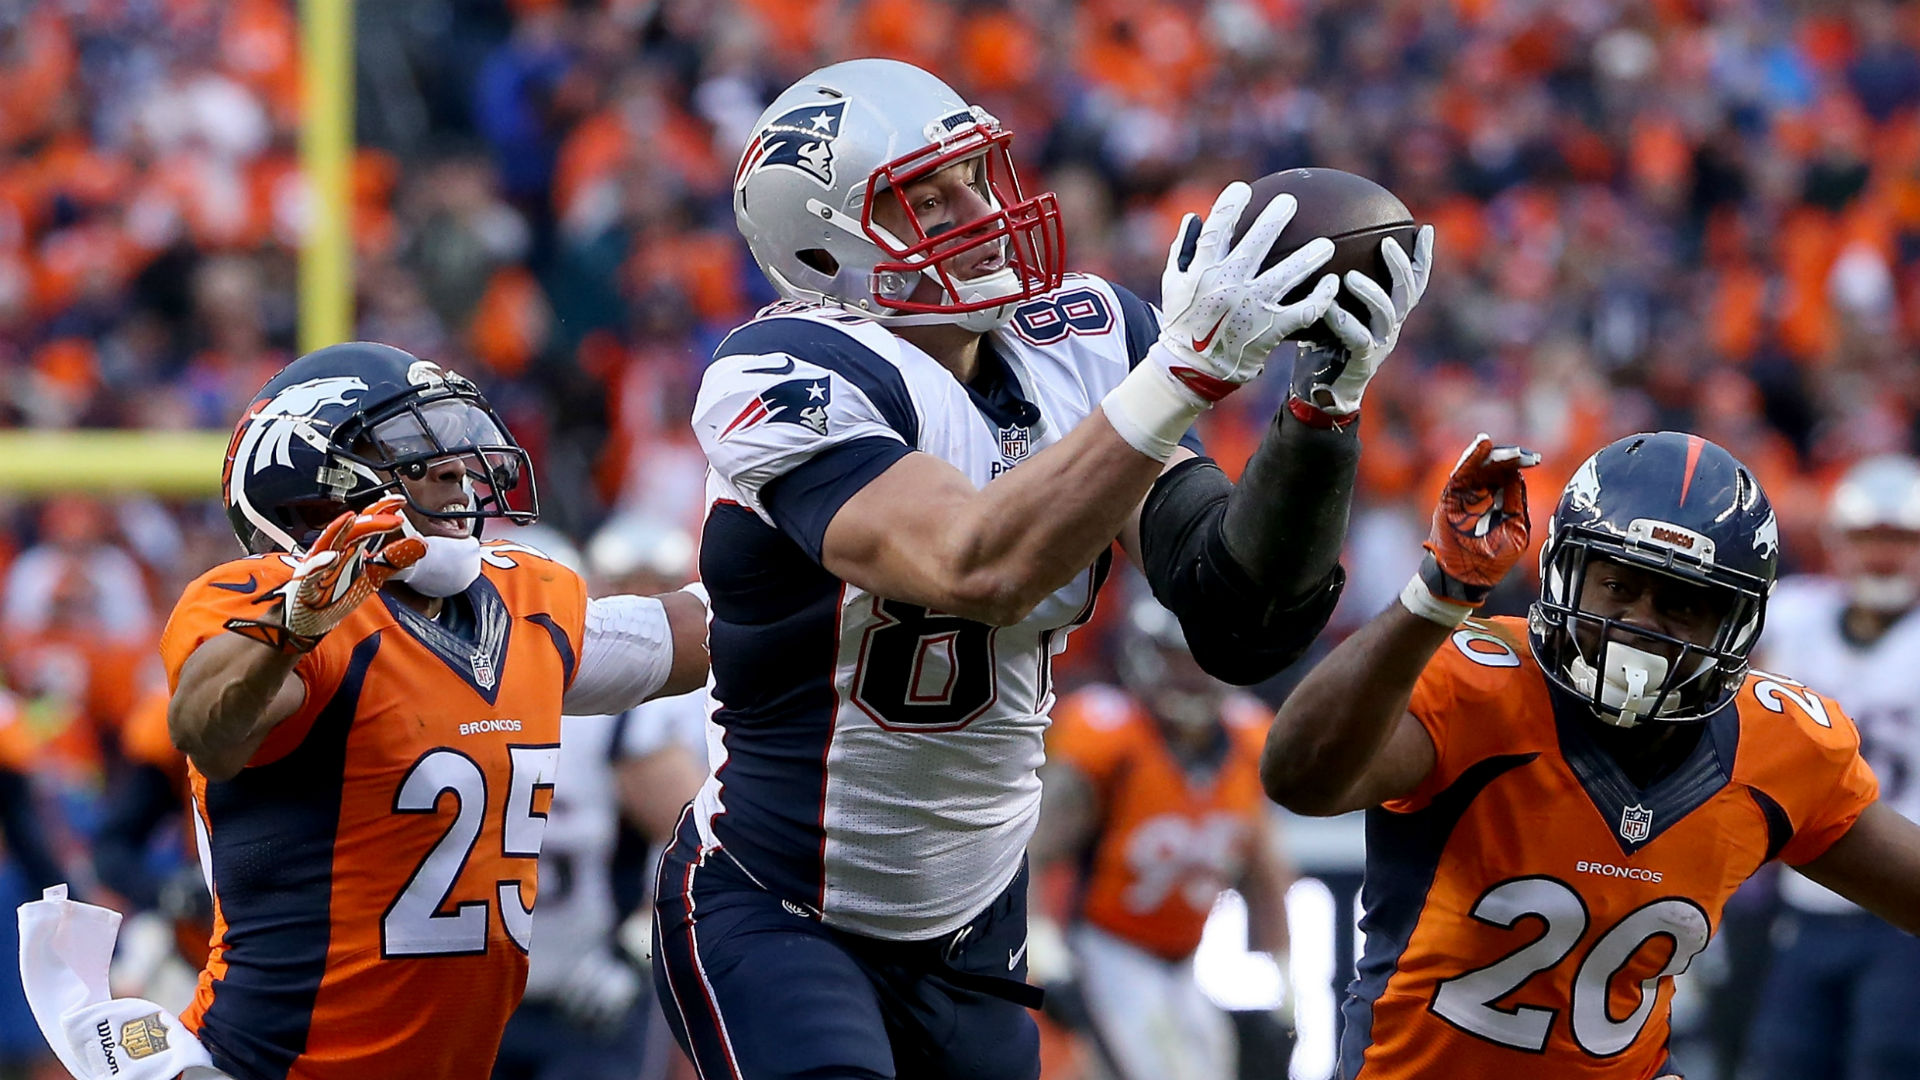 Cramping Rob Gronkowski nearly saved Patriots NFL